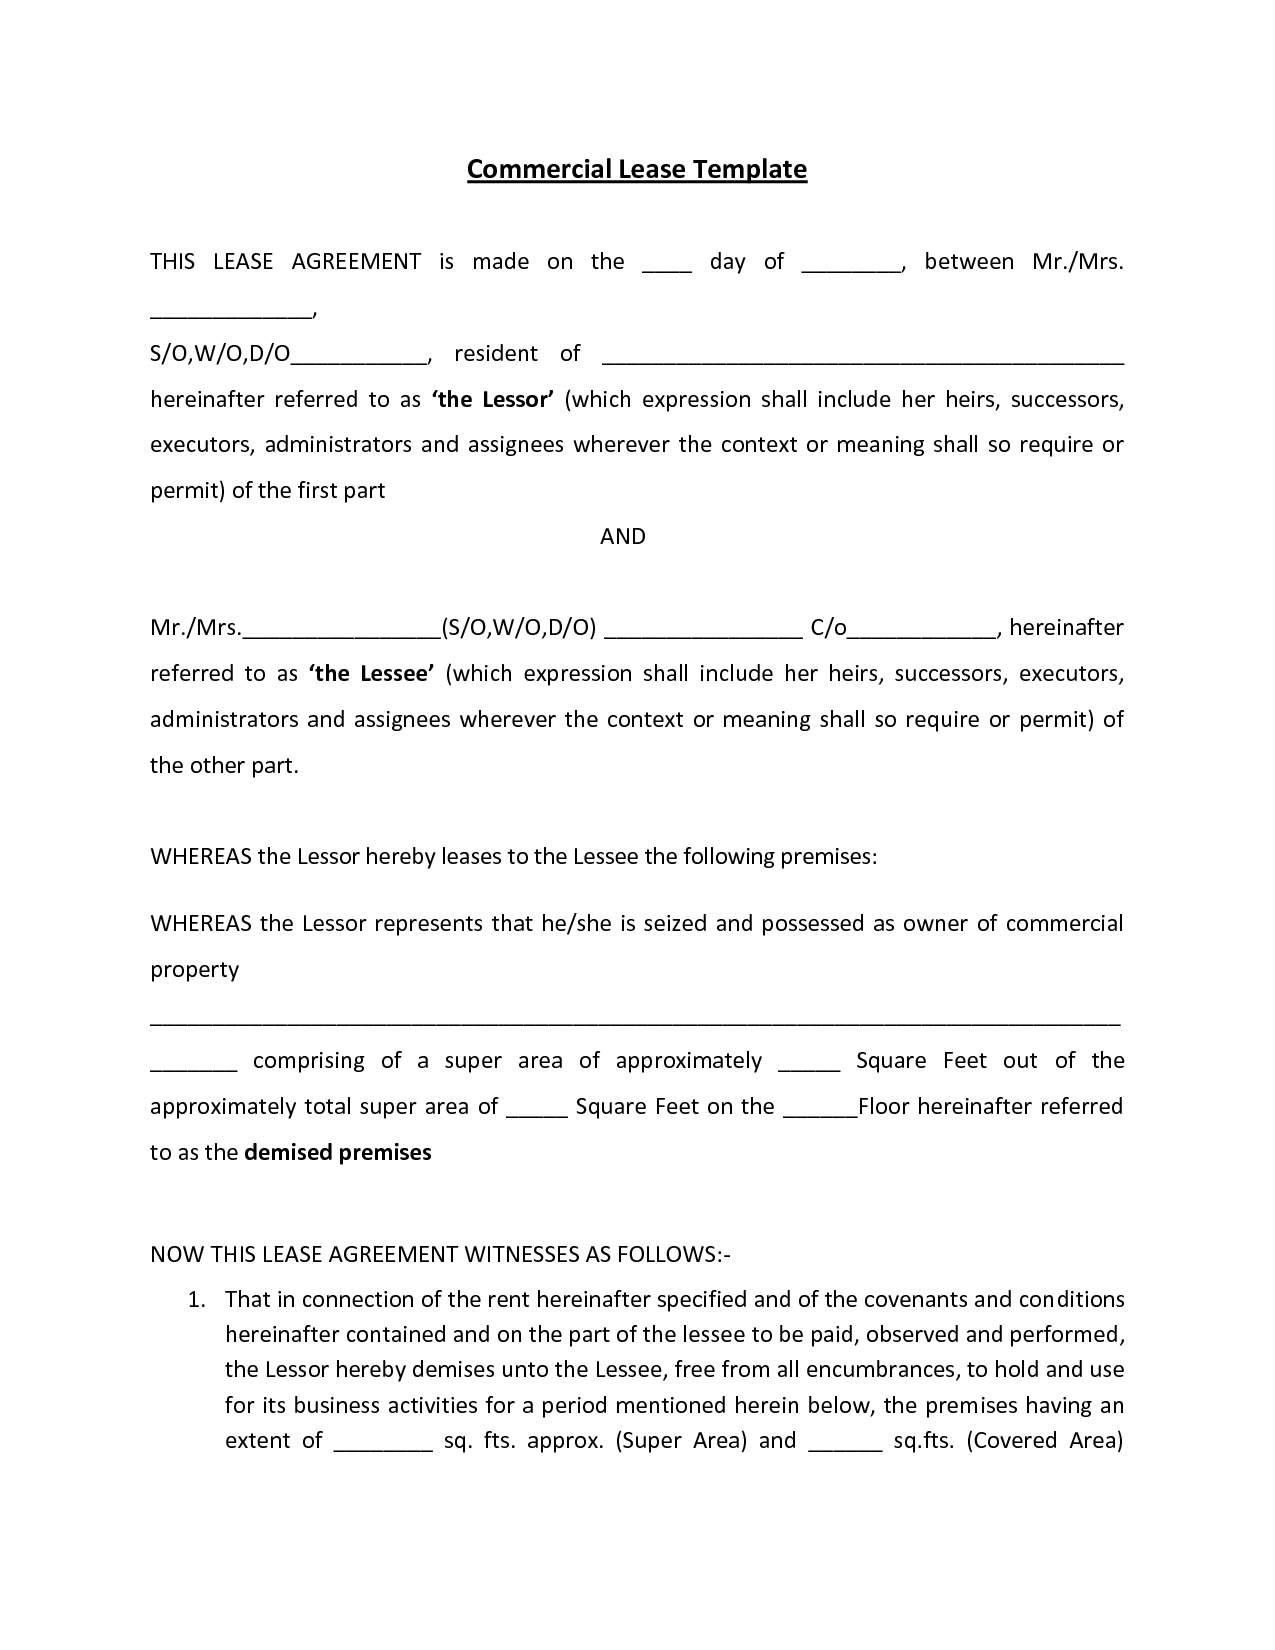 Mercial Lease Agreement Free Printable Documents